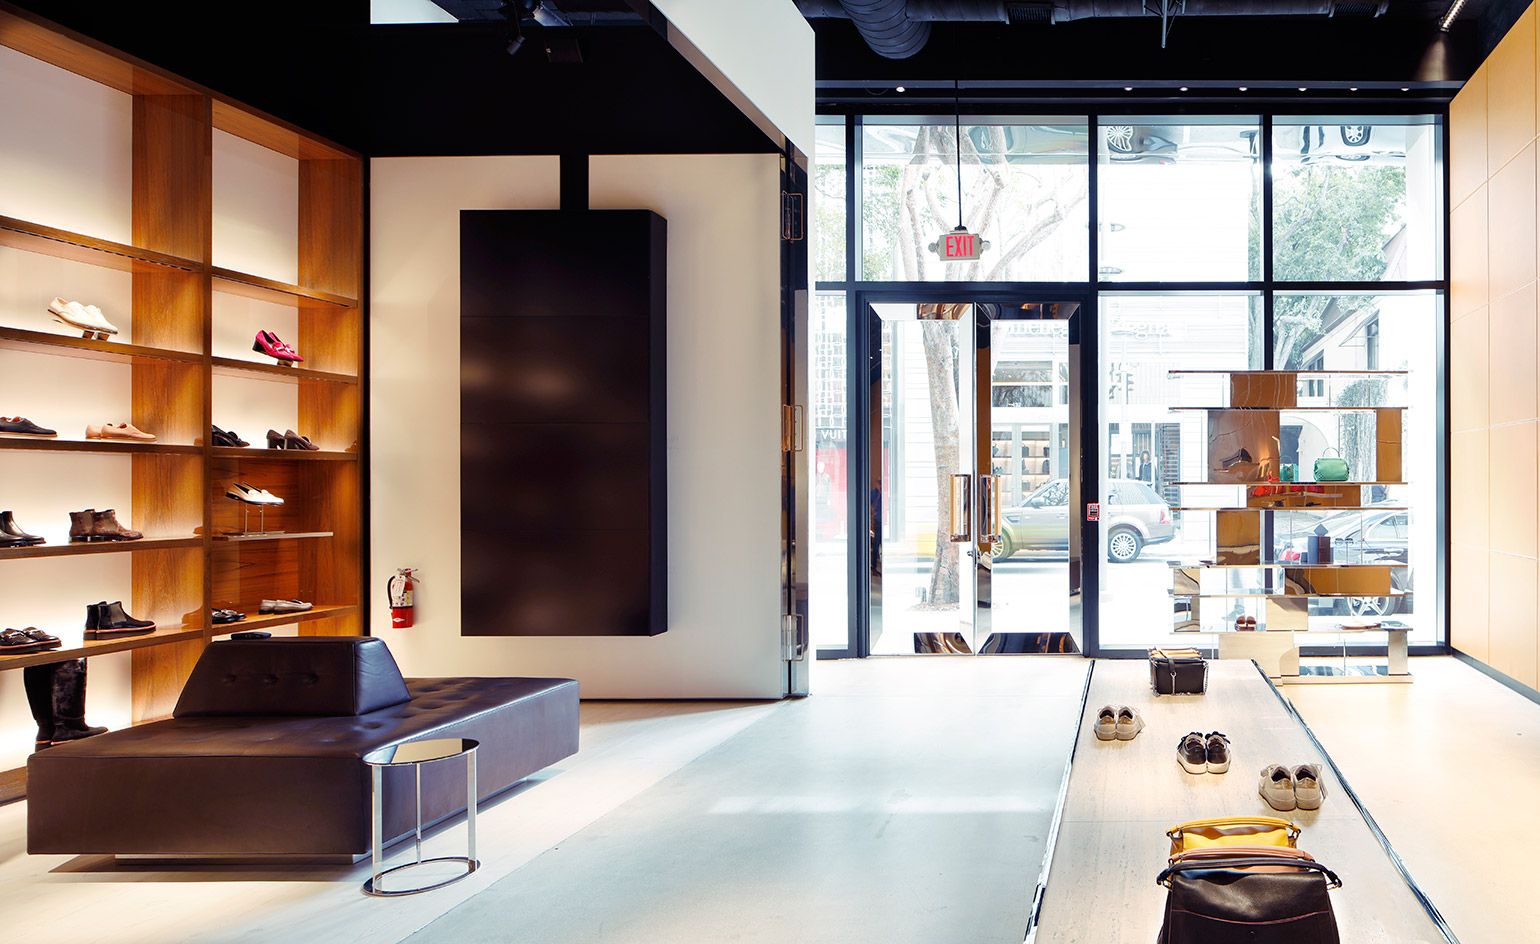 tods new store miami design district - Furniture Stores In Miami Design District